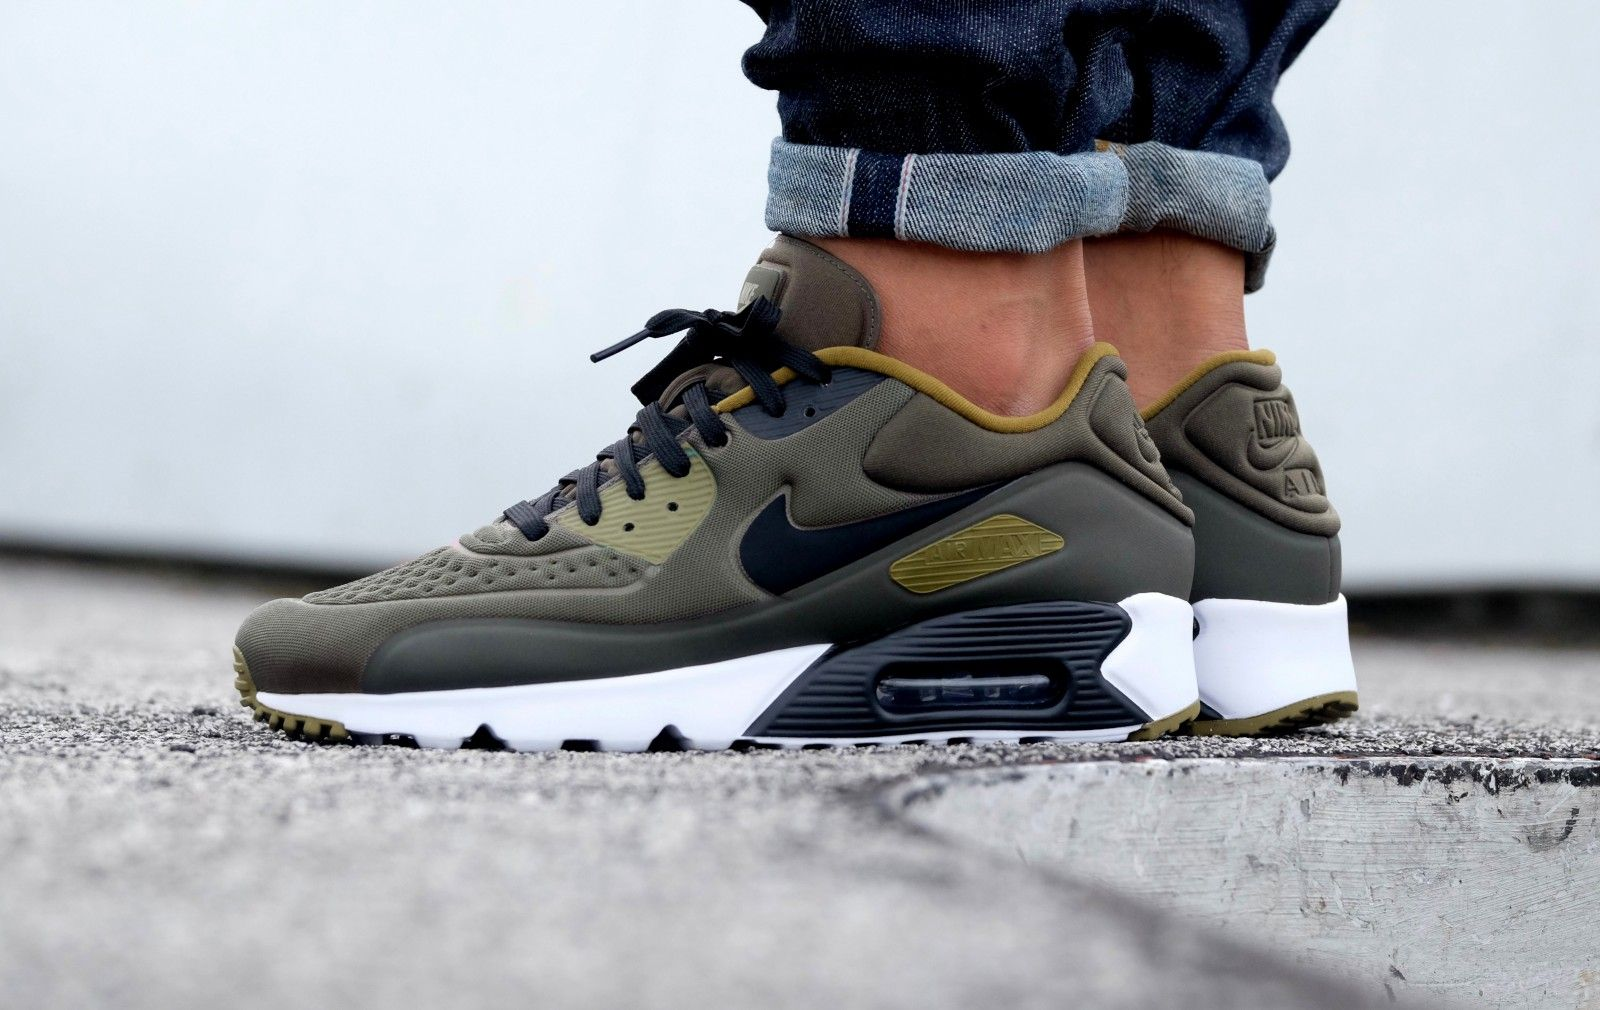 Nike Air Max 90 Ultra Special Edition Cargo Khaki BlackOlive FlakWhite